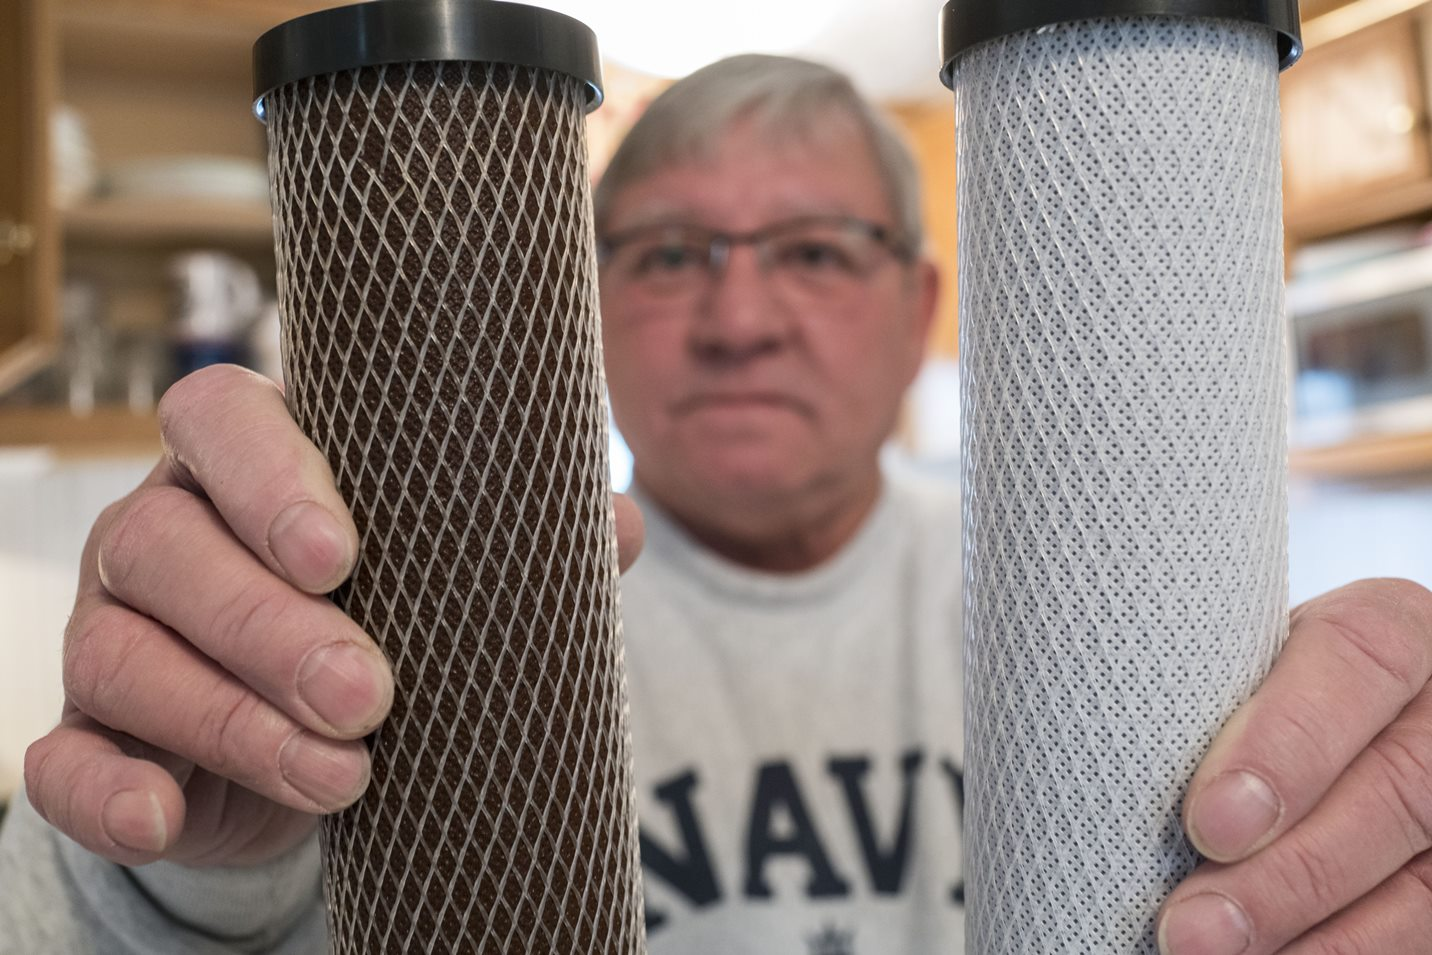 Raymond Becker holds a water filter that has been discolored from 30 days of use, left, and a new, unused water filter, right, for comparison in the kitchen of his home in Circle Courts Mobile Home Park on Saturday, May 6, 2017.  (Derek Gee/Buffalo News)